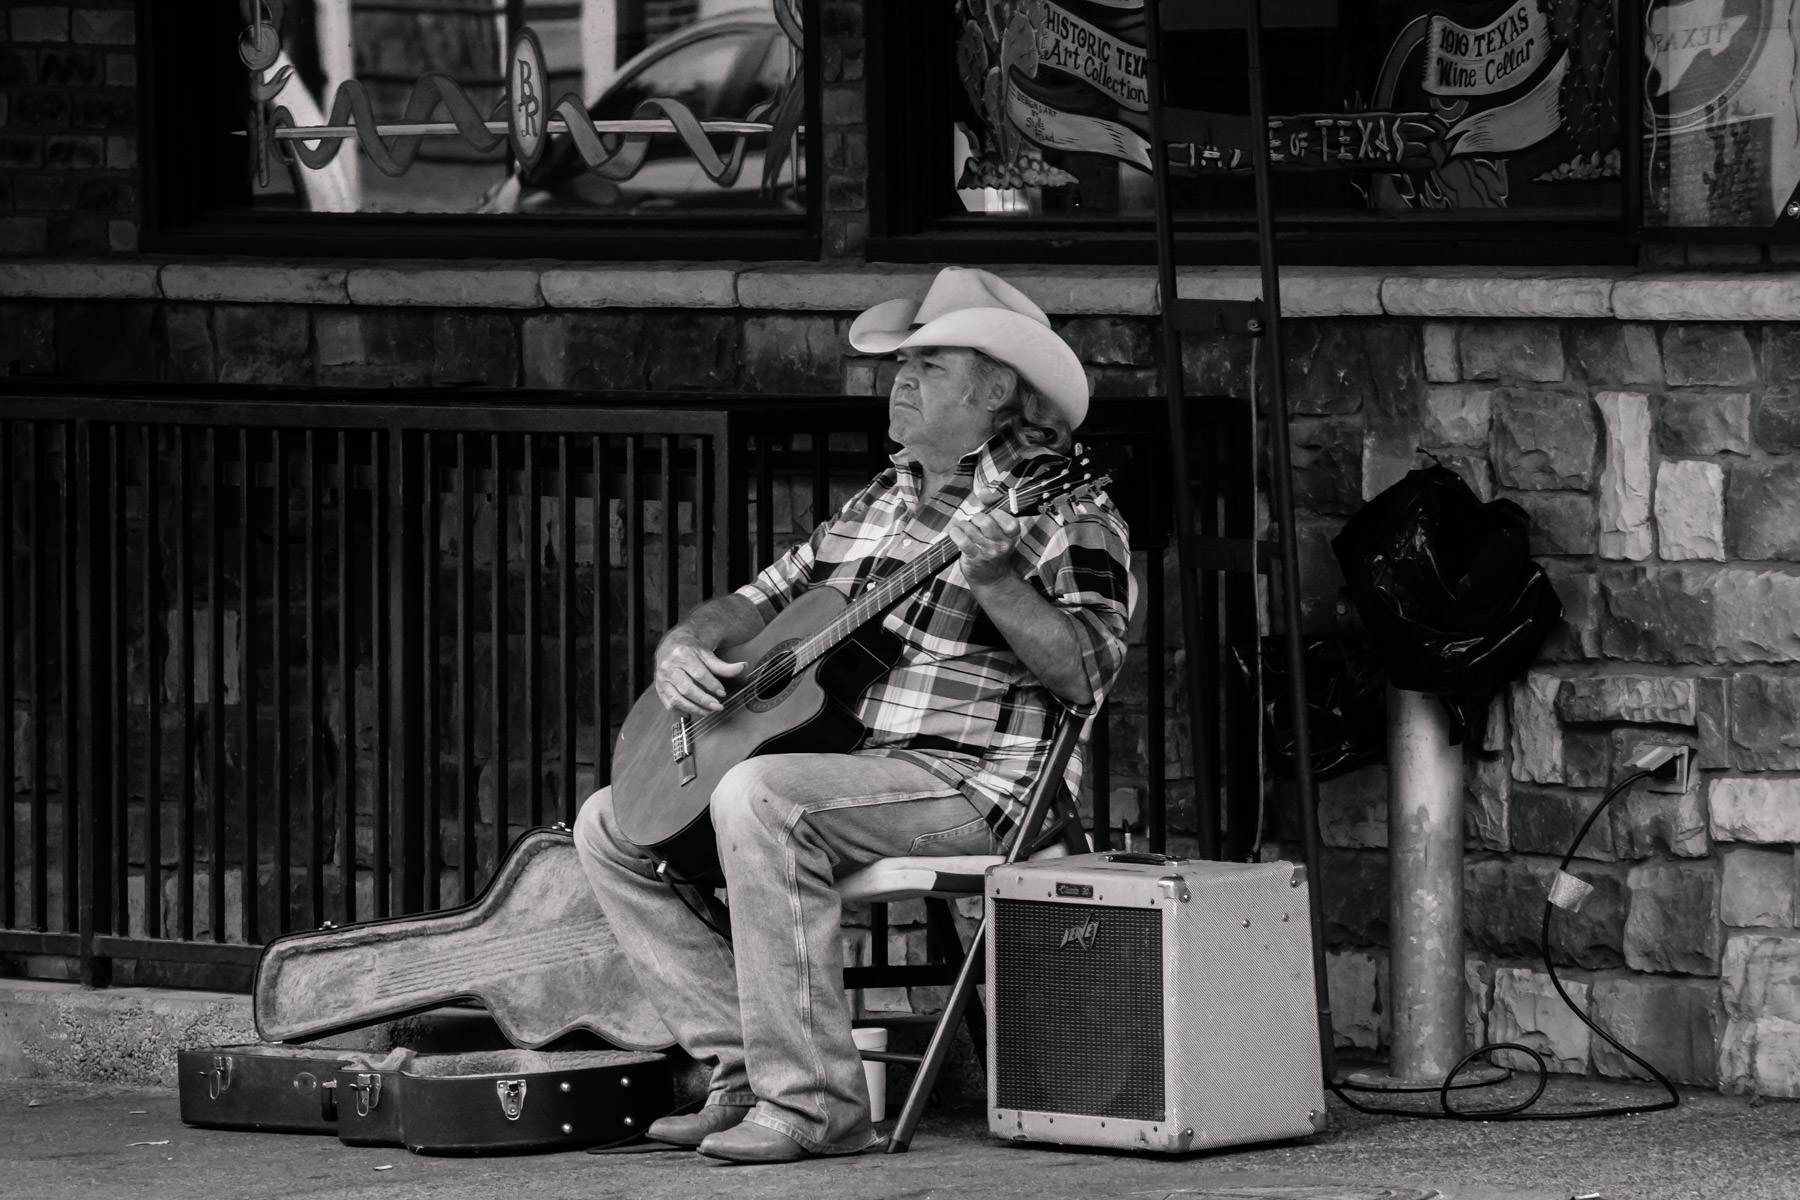 A guitarist spotted busking at the Fort Worth Stockyards.